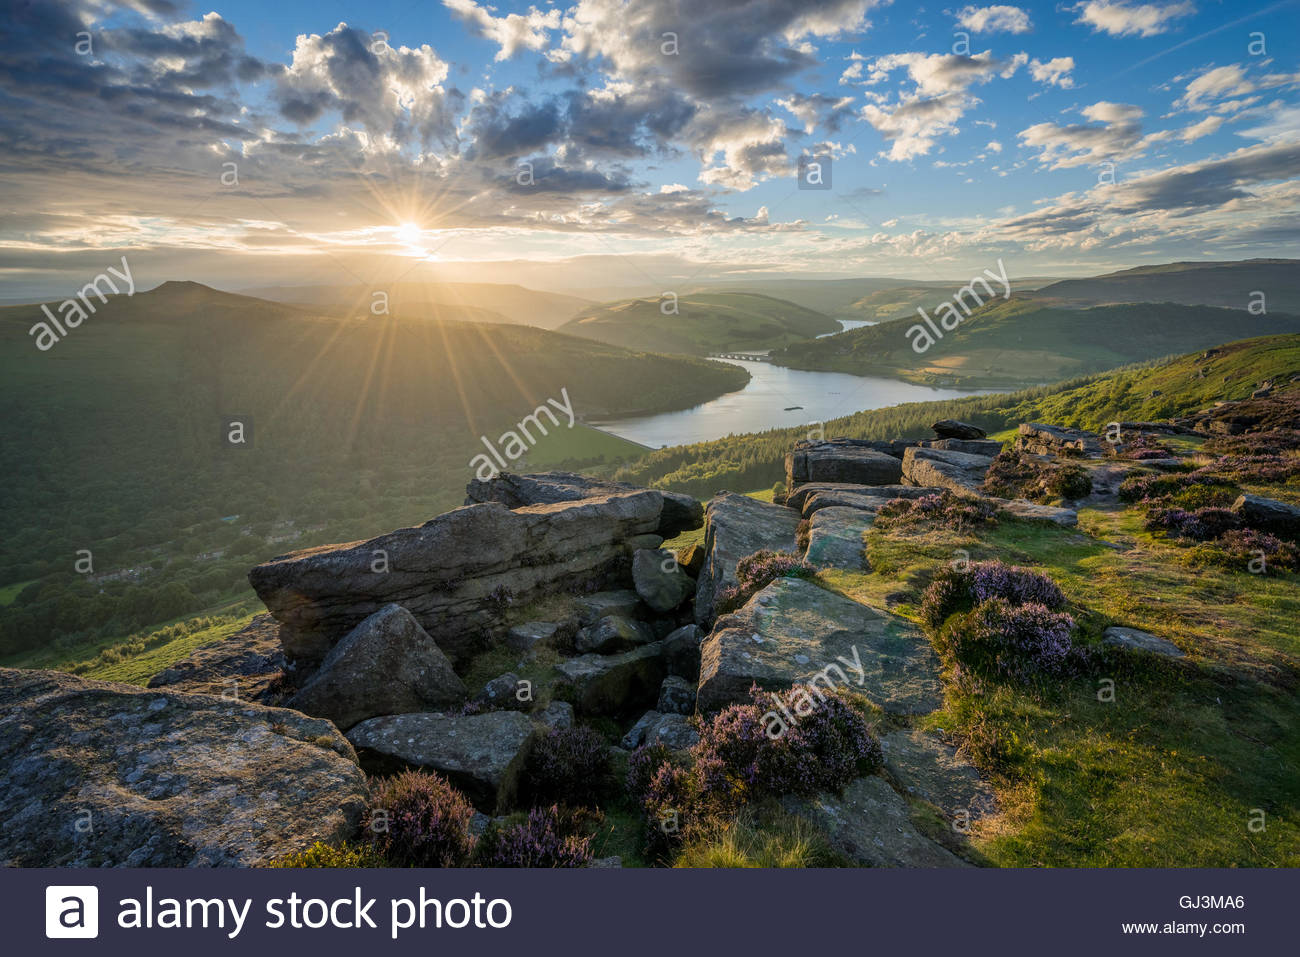 A stunning sunset with the heather just starting to bloom on Bamford Edge. - Stock Image